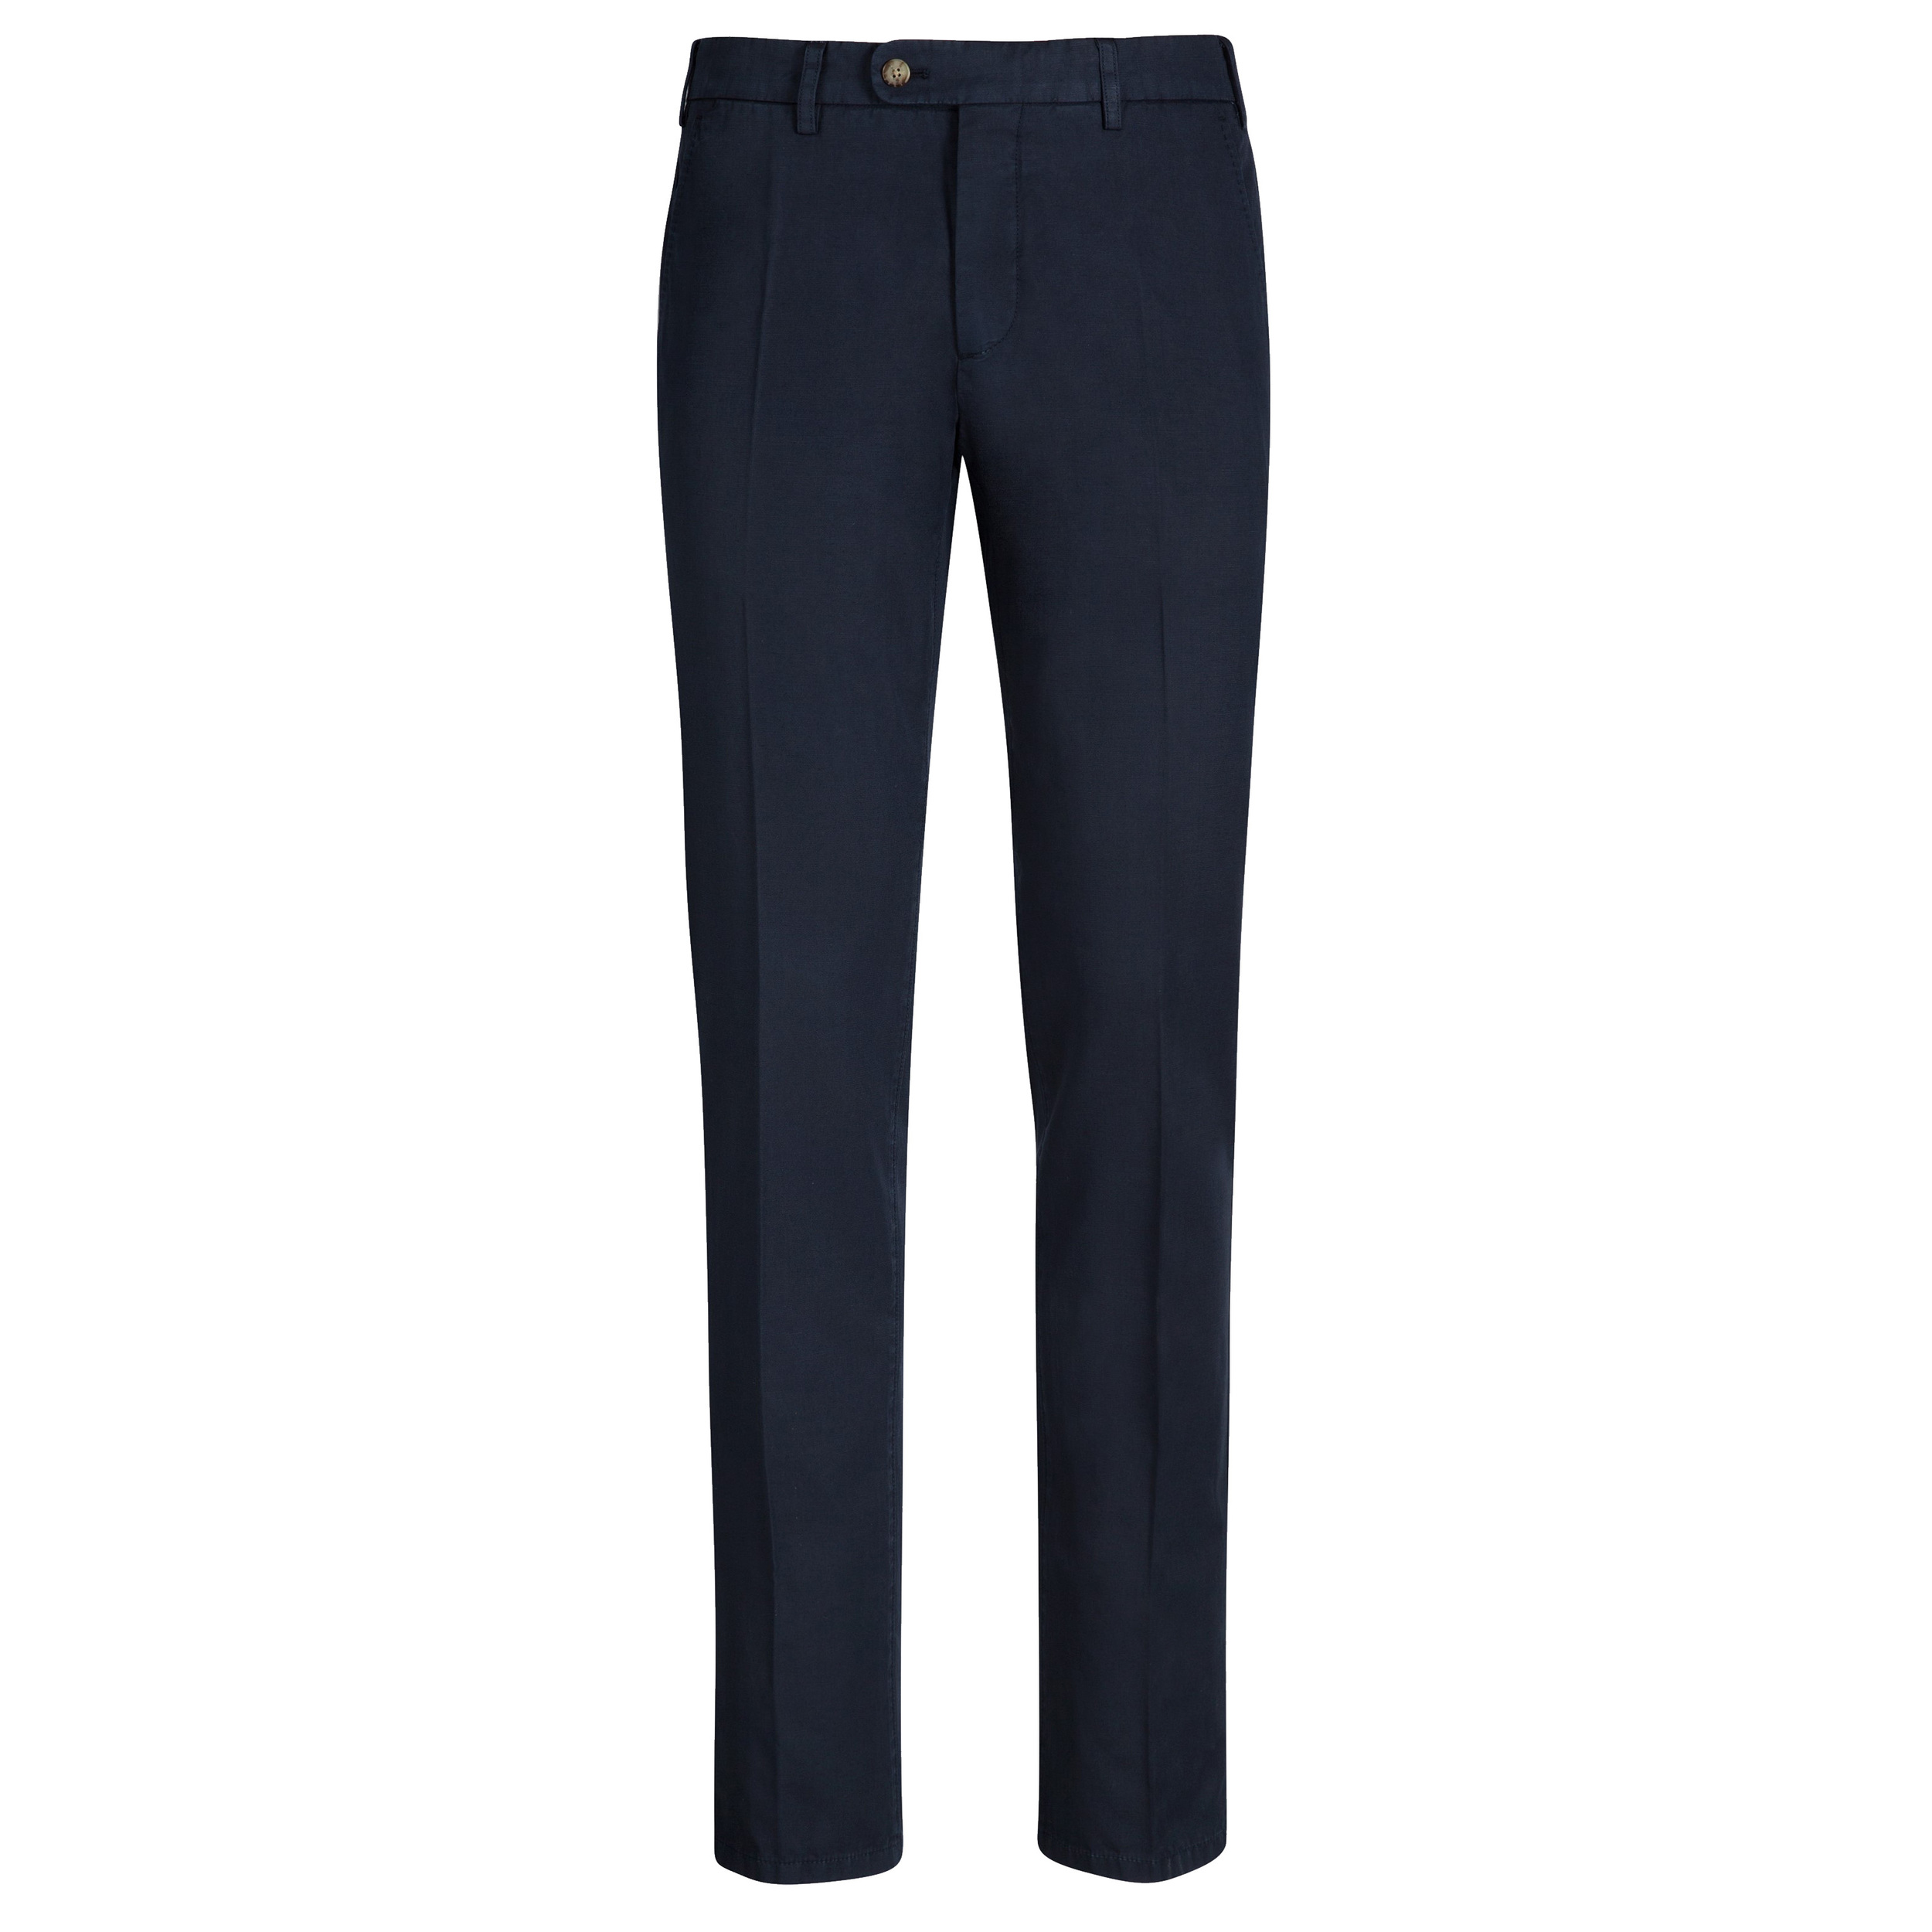 Trousers__B766_Suitsupply_Online_Store_1.jpg